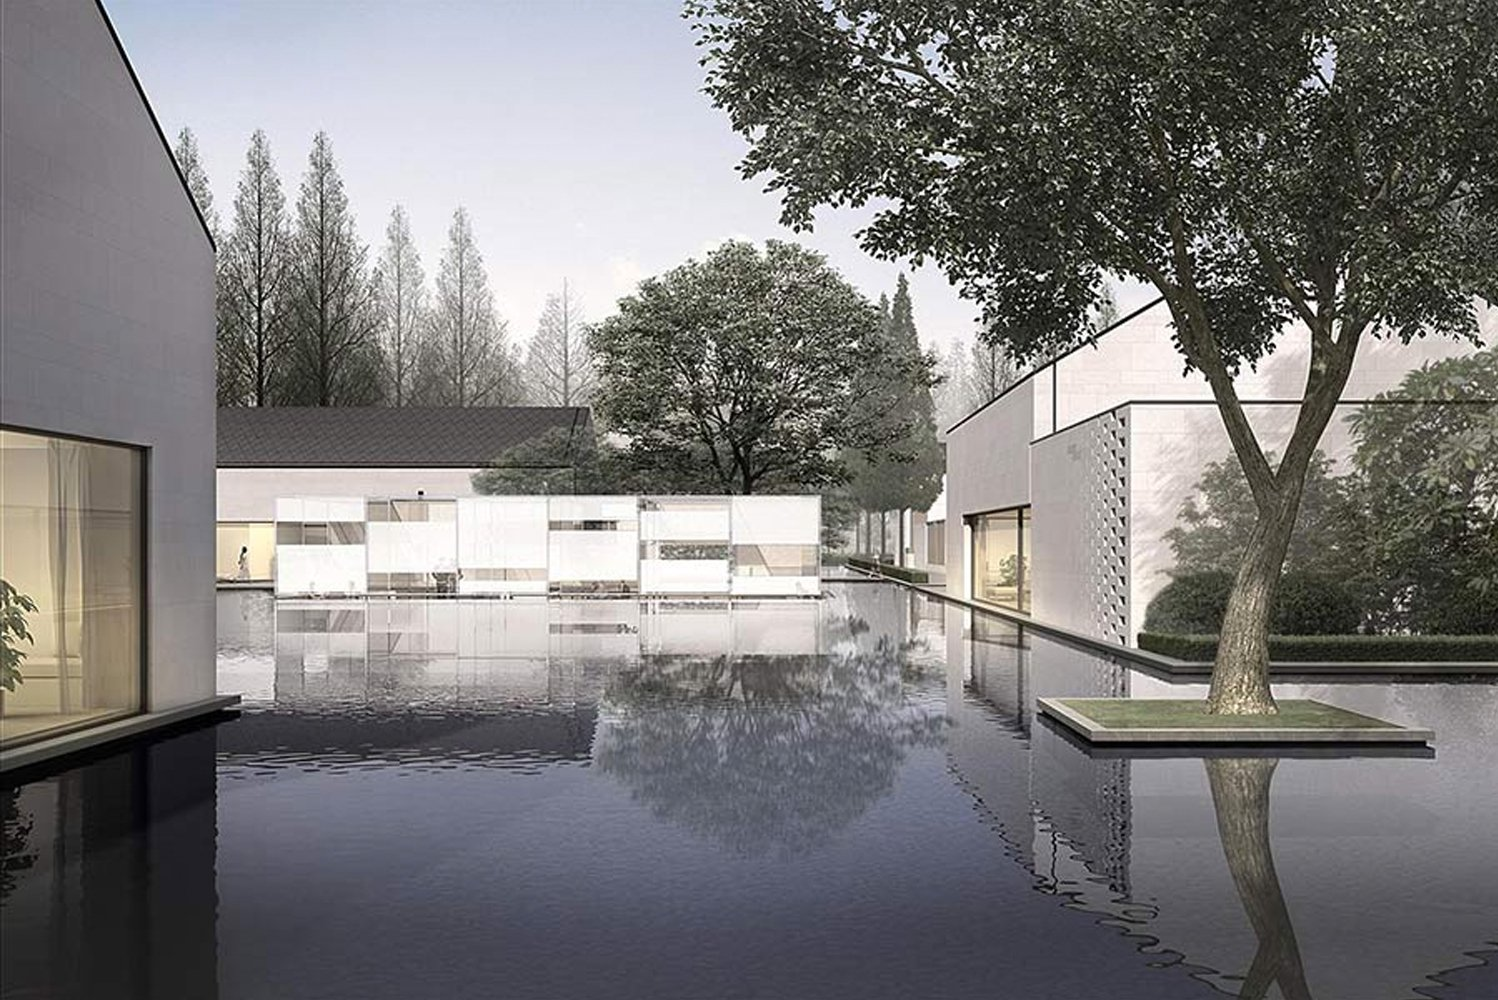 Alila's third property in China is scheduled to open this November in Wuzhen.